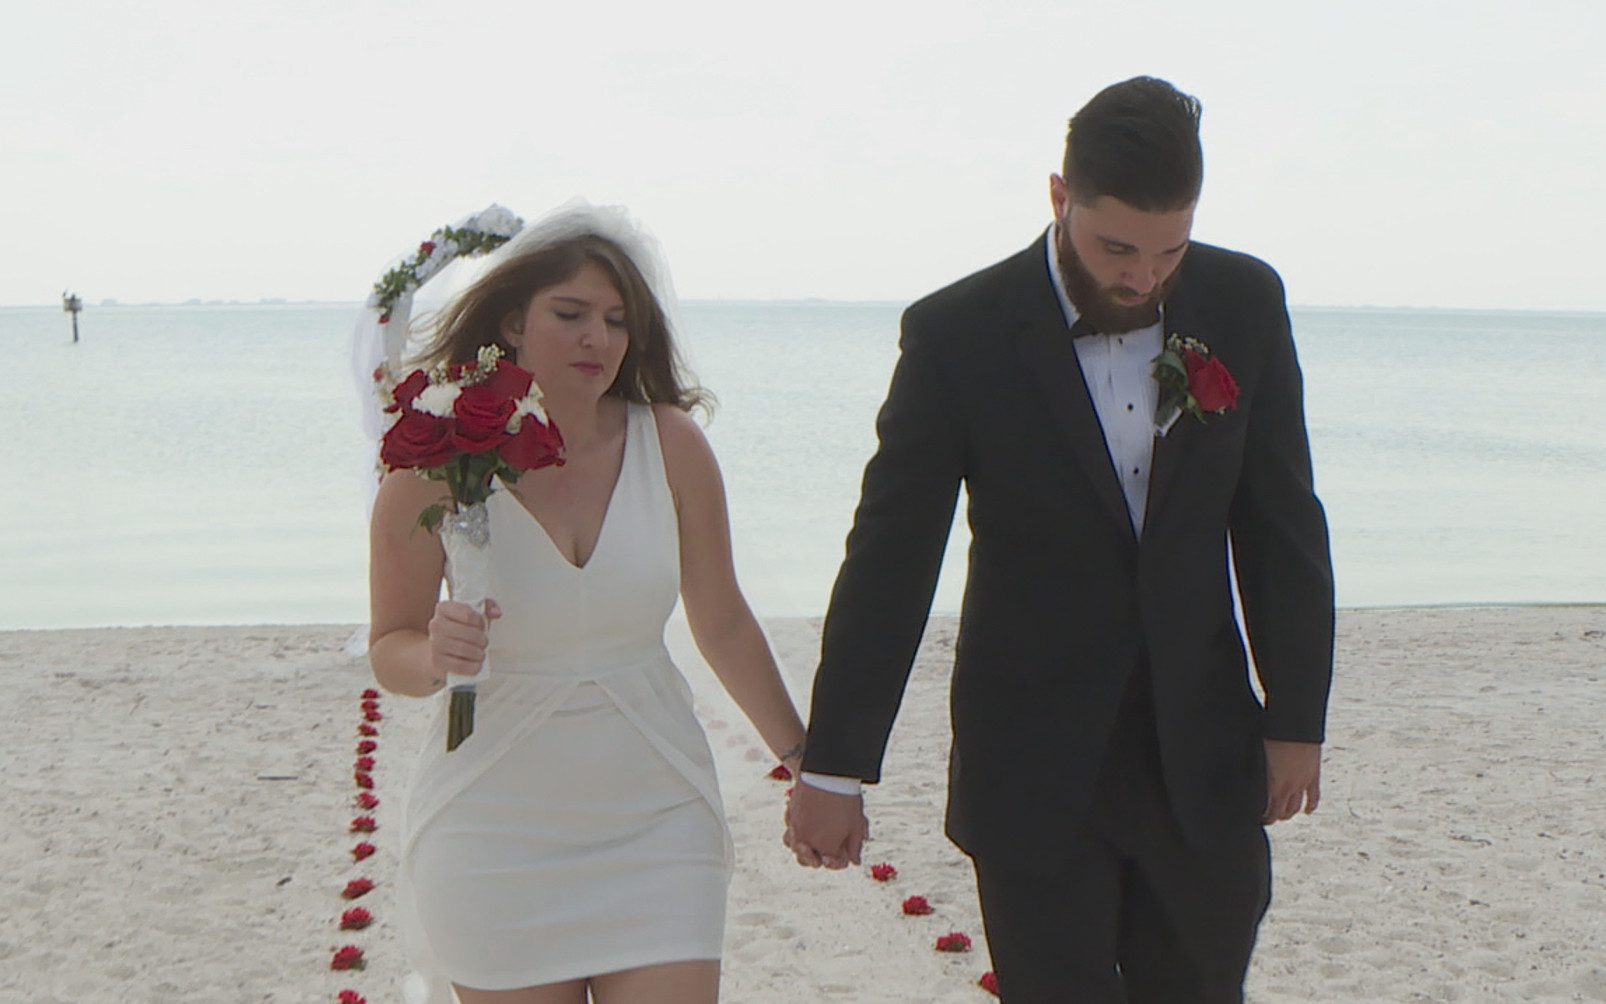 Groom and bride walking hand in hand on a beach